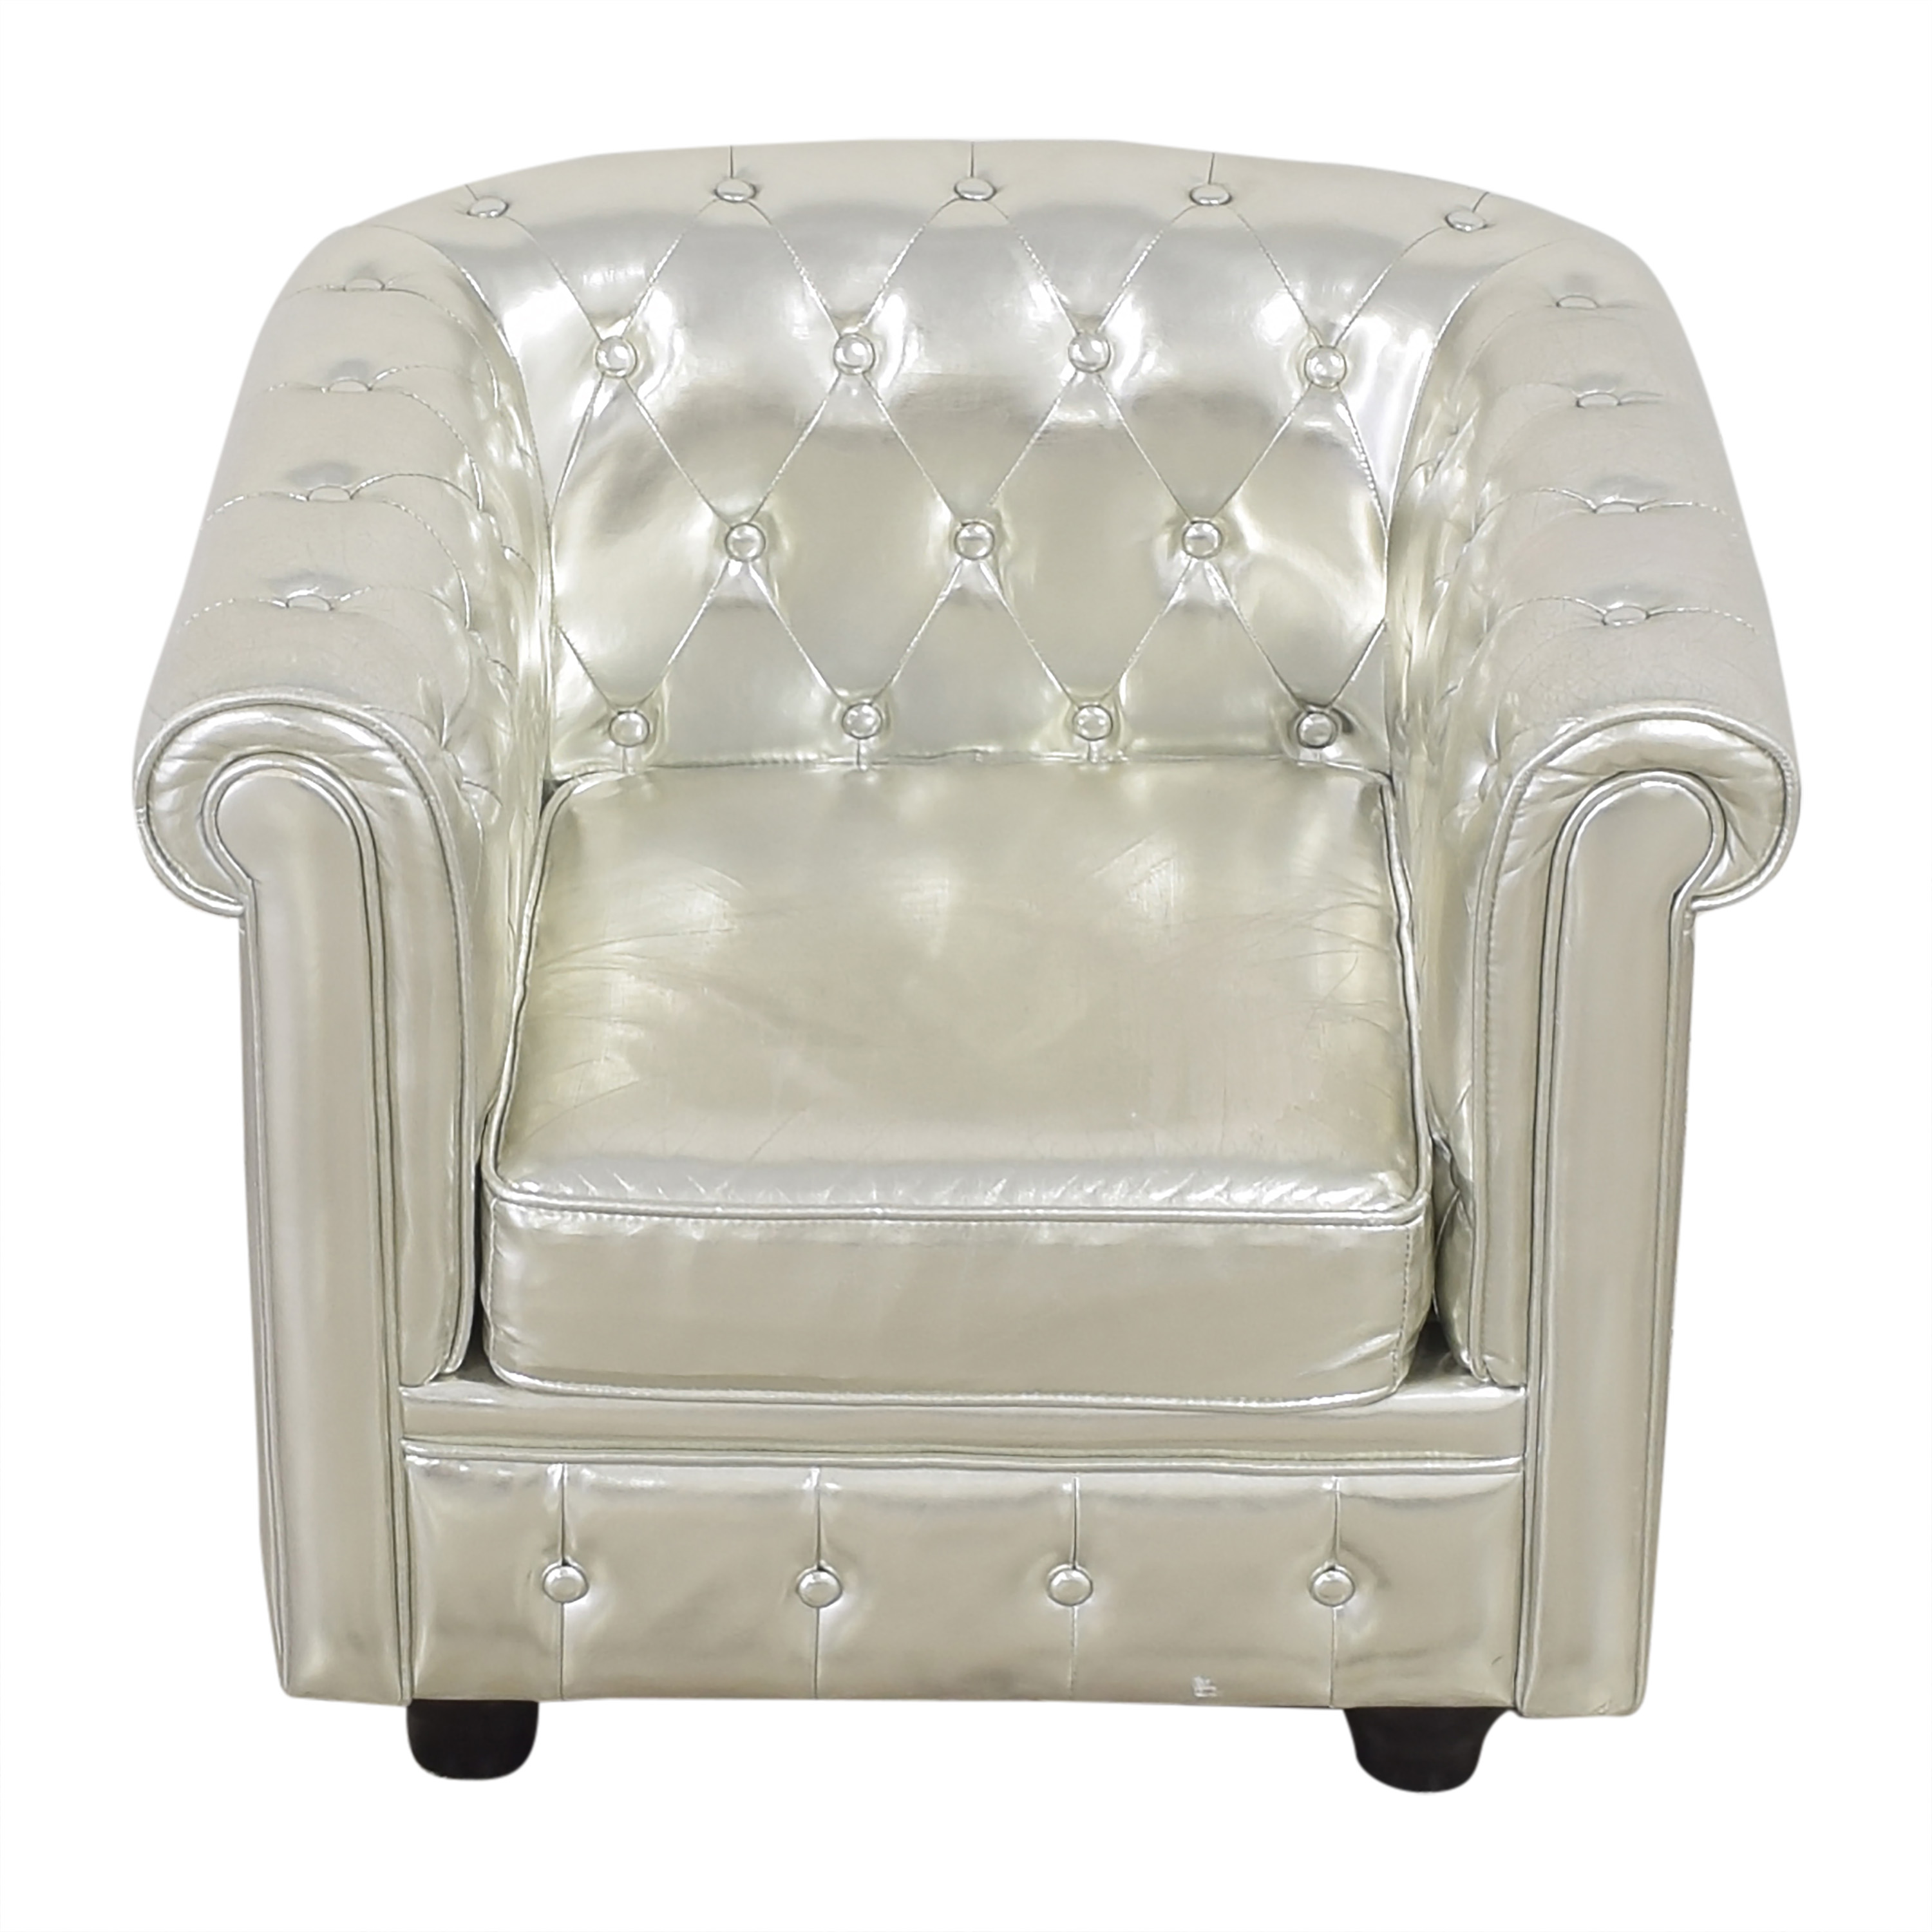 Tufted Club Chair dimensions